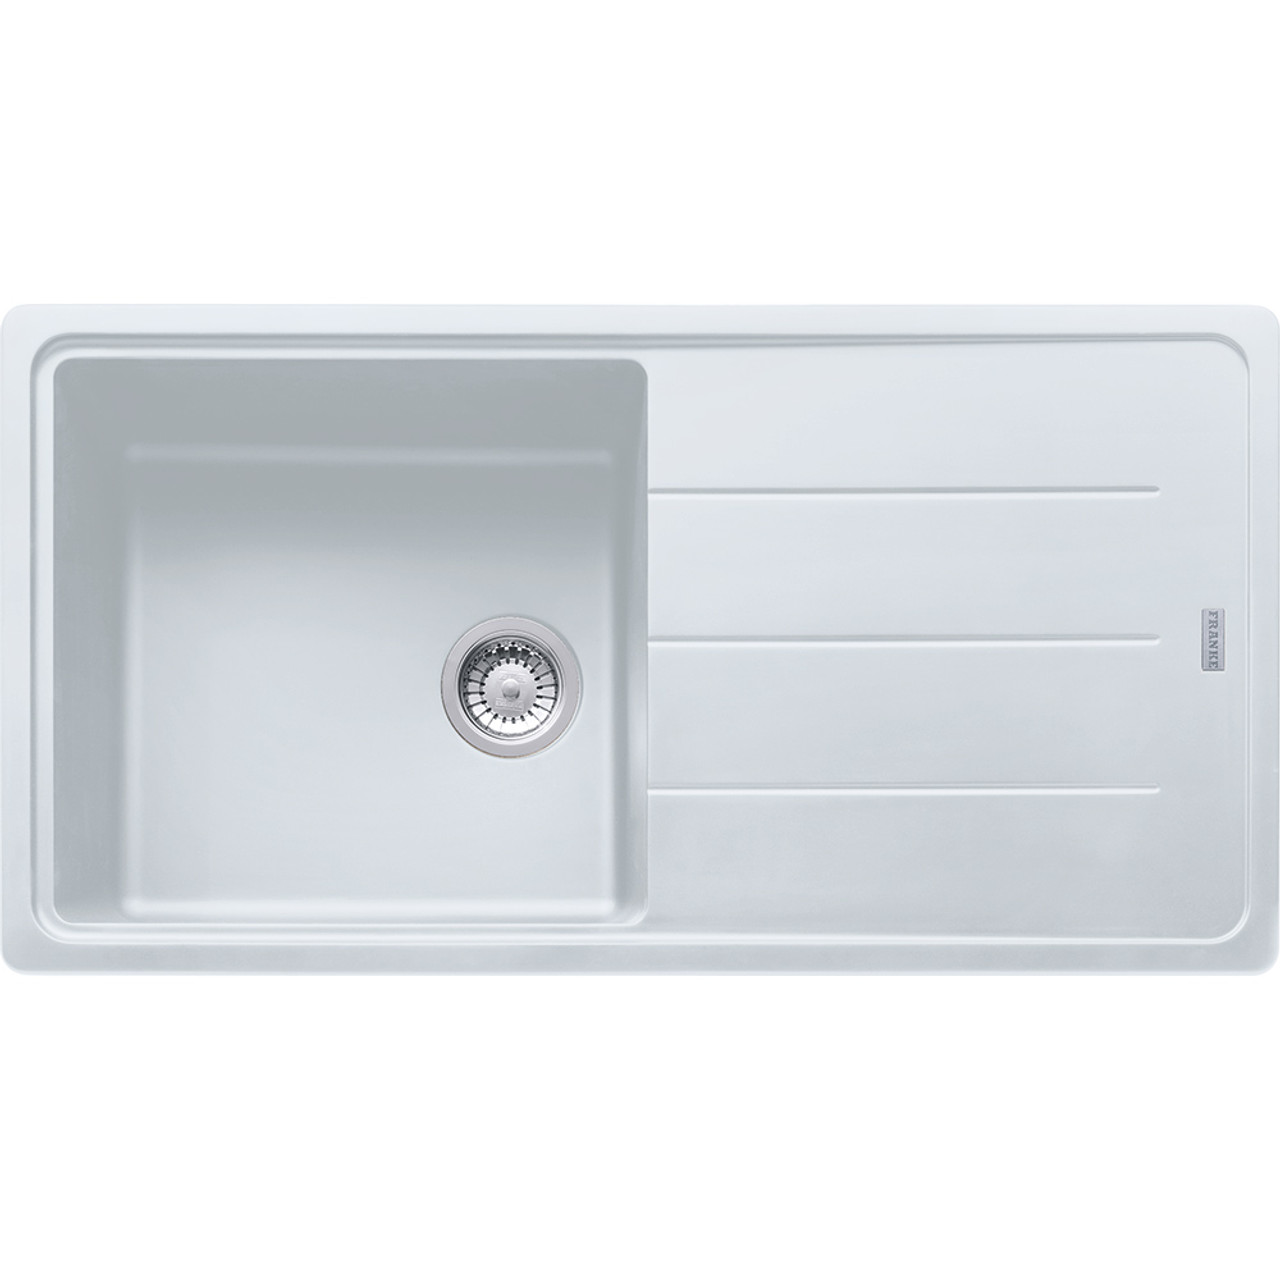 Franke basis bfg611 970 fragranite polar white kitchen sink